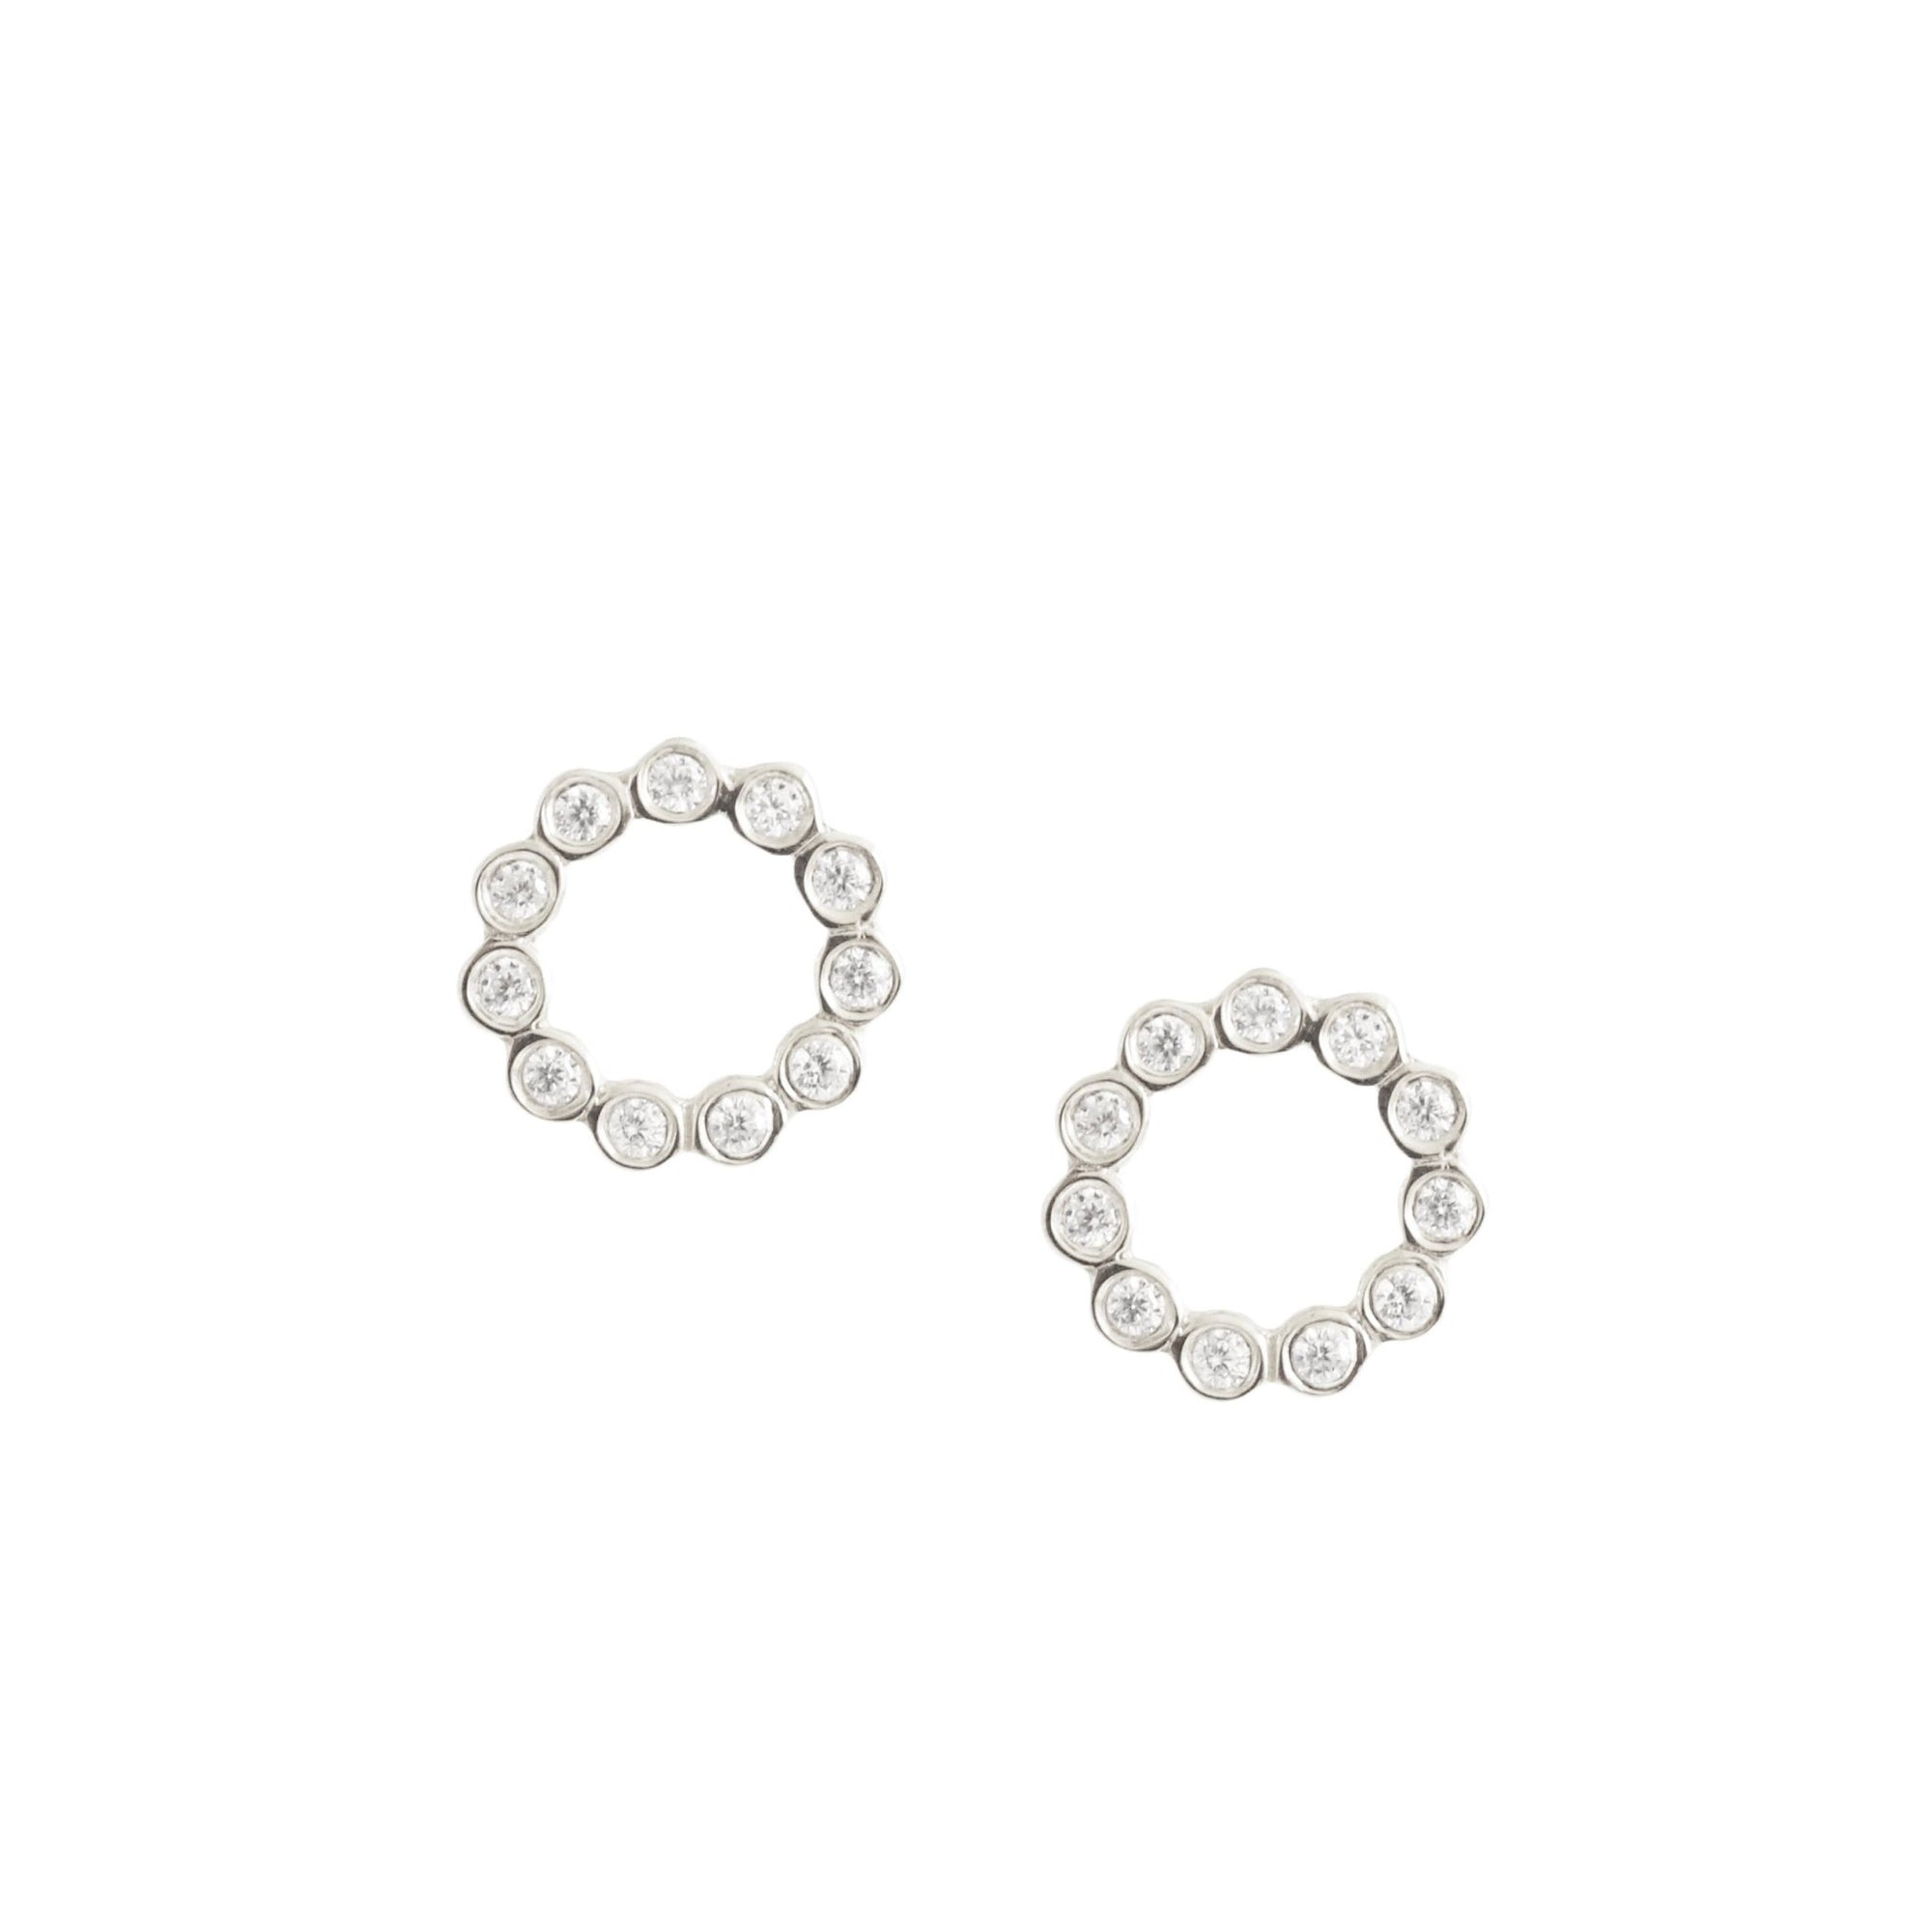 FRAICHE INSPIRE HOOP EARRINGS - CUBIC ZIRCONIA & SILVER - SO PRETTY CARA COTTER